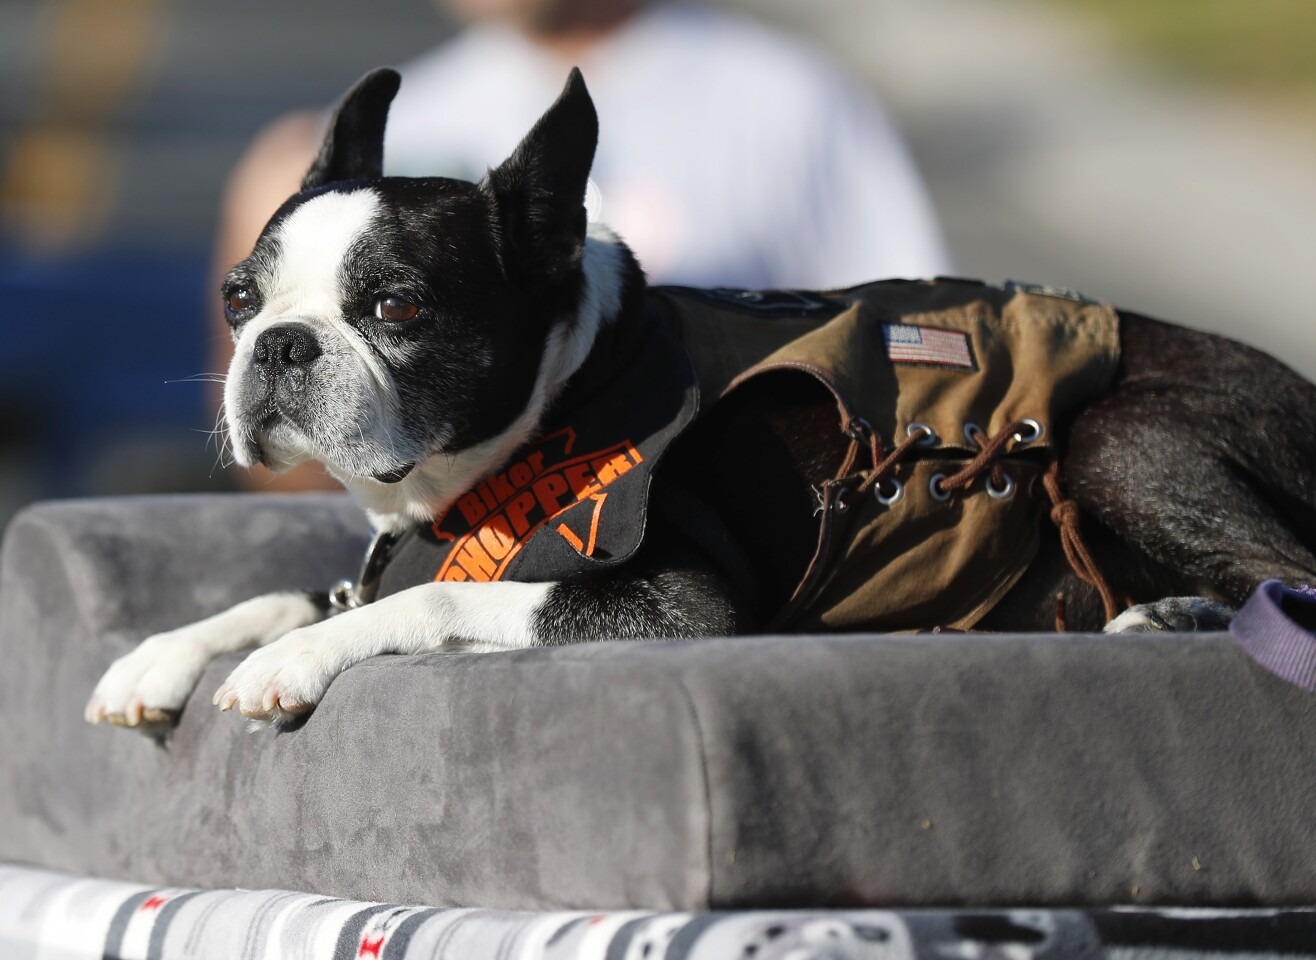 Chopper the Biker Dog watches a well-wishers do a drive-by birthday celebration for his 11th birthday at Dallas Park in La Mesa on August 2, 2020. The Boston Terrier, who is a therapy dog and regularly visits hospital patients, has had health issues over the last year.